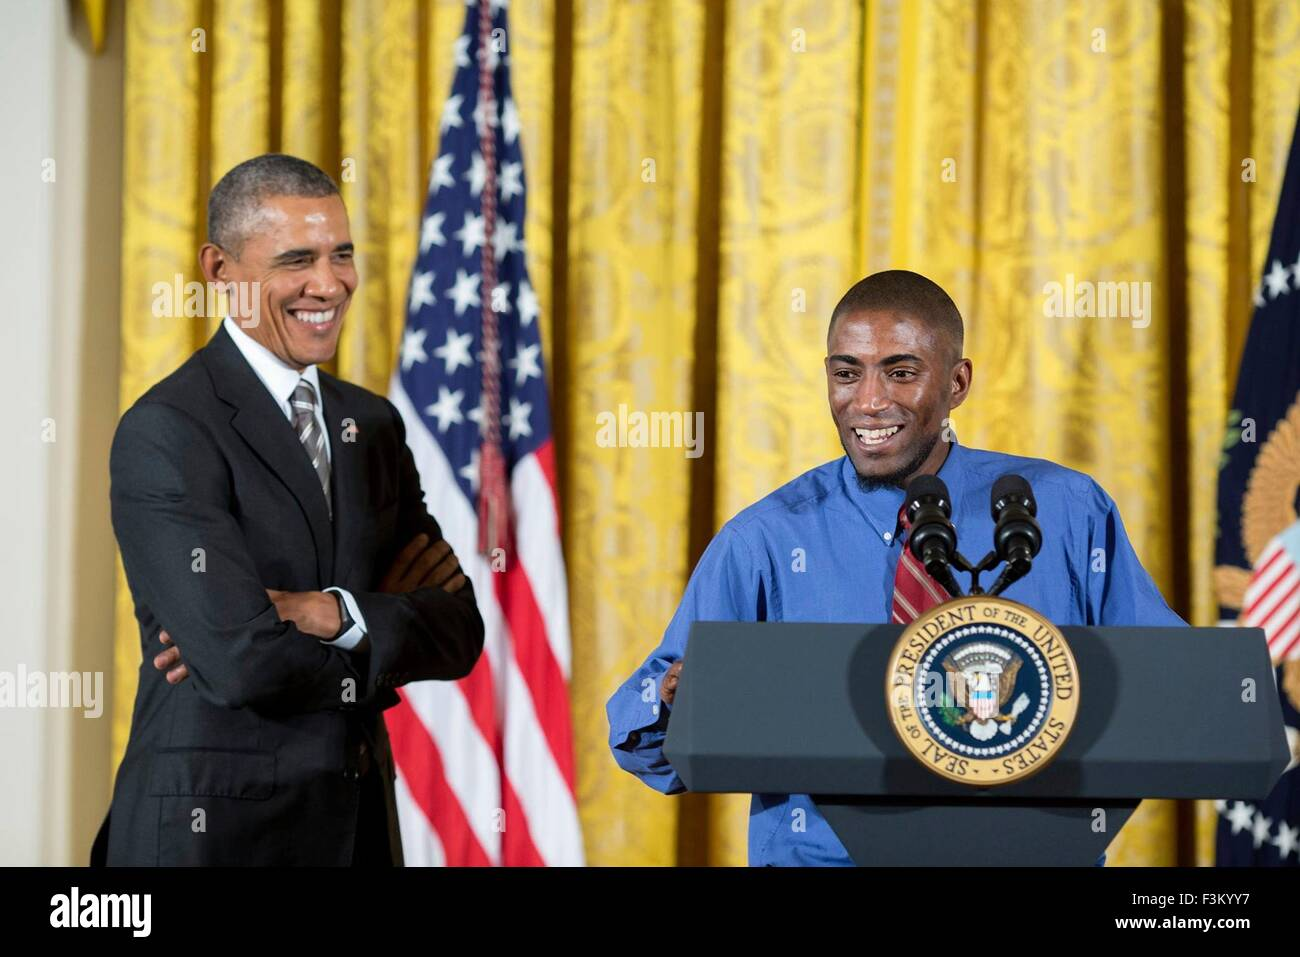 Washington DC, USA. 7th October, 2015. U.S. President Barack Obama smiles as Terrence Wise of Fight for $15 introduces - Stock Image